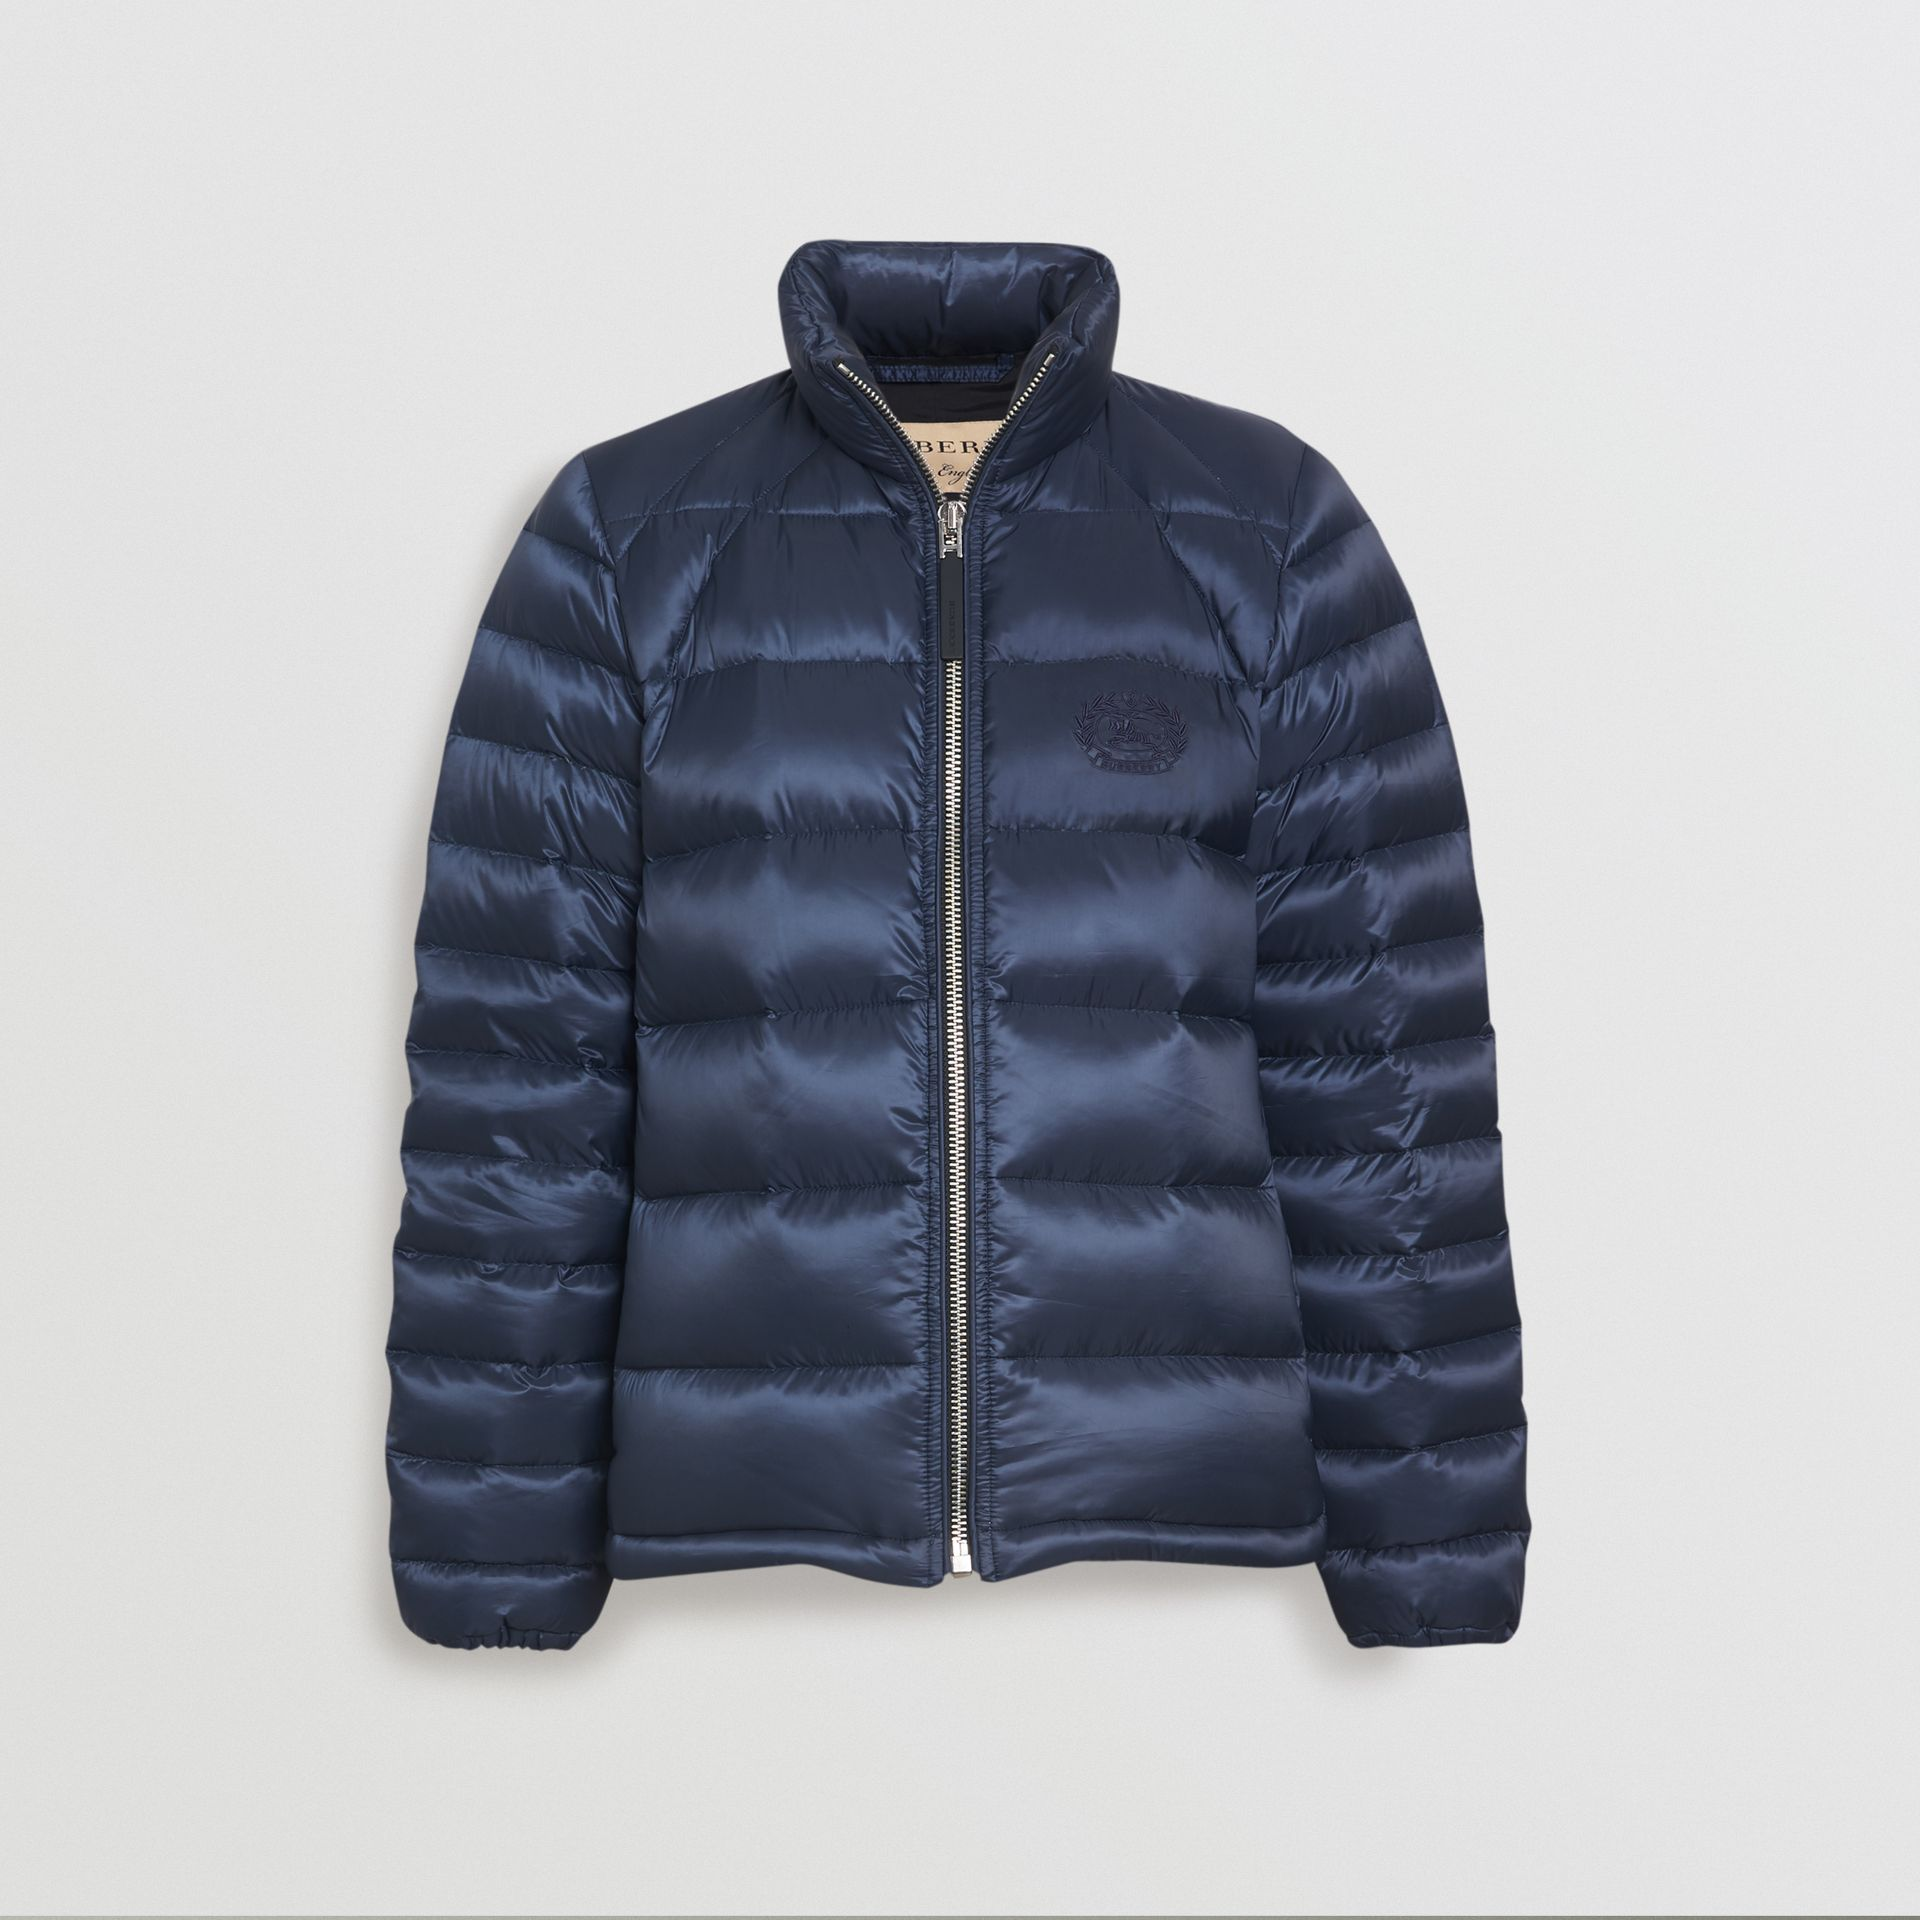 Down-filled Puffer Jacket in Navy - Women | Burberry Hong Kong - gallery image 2